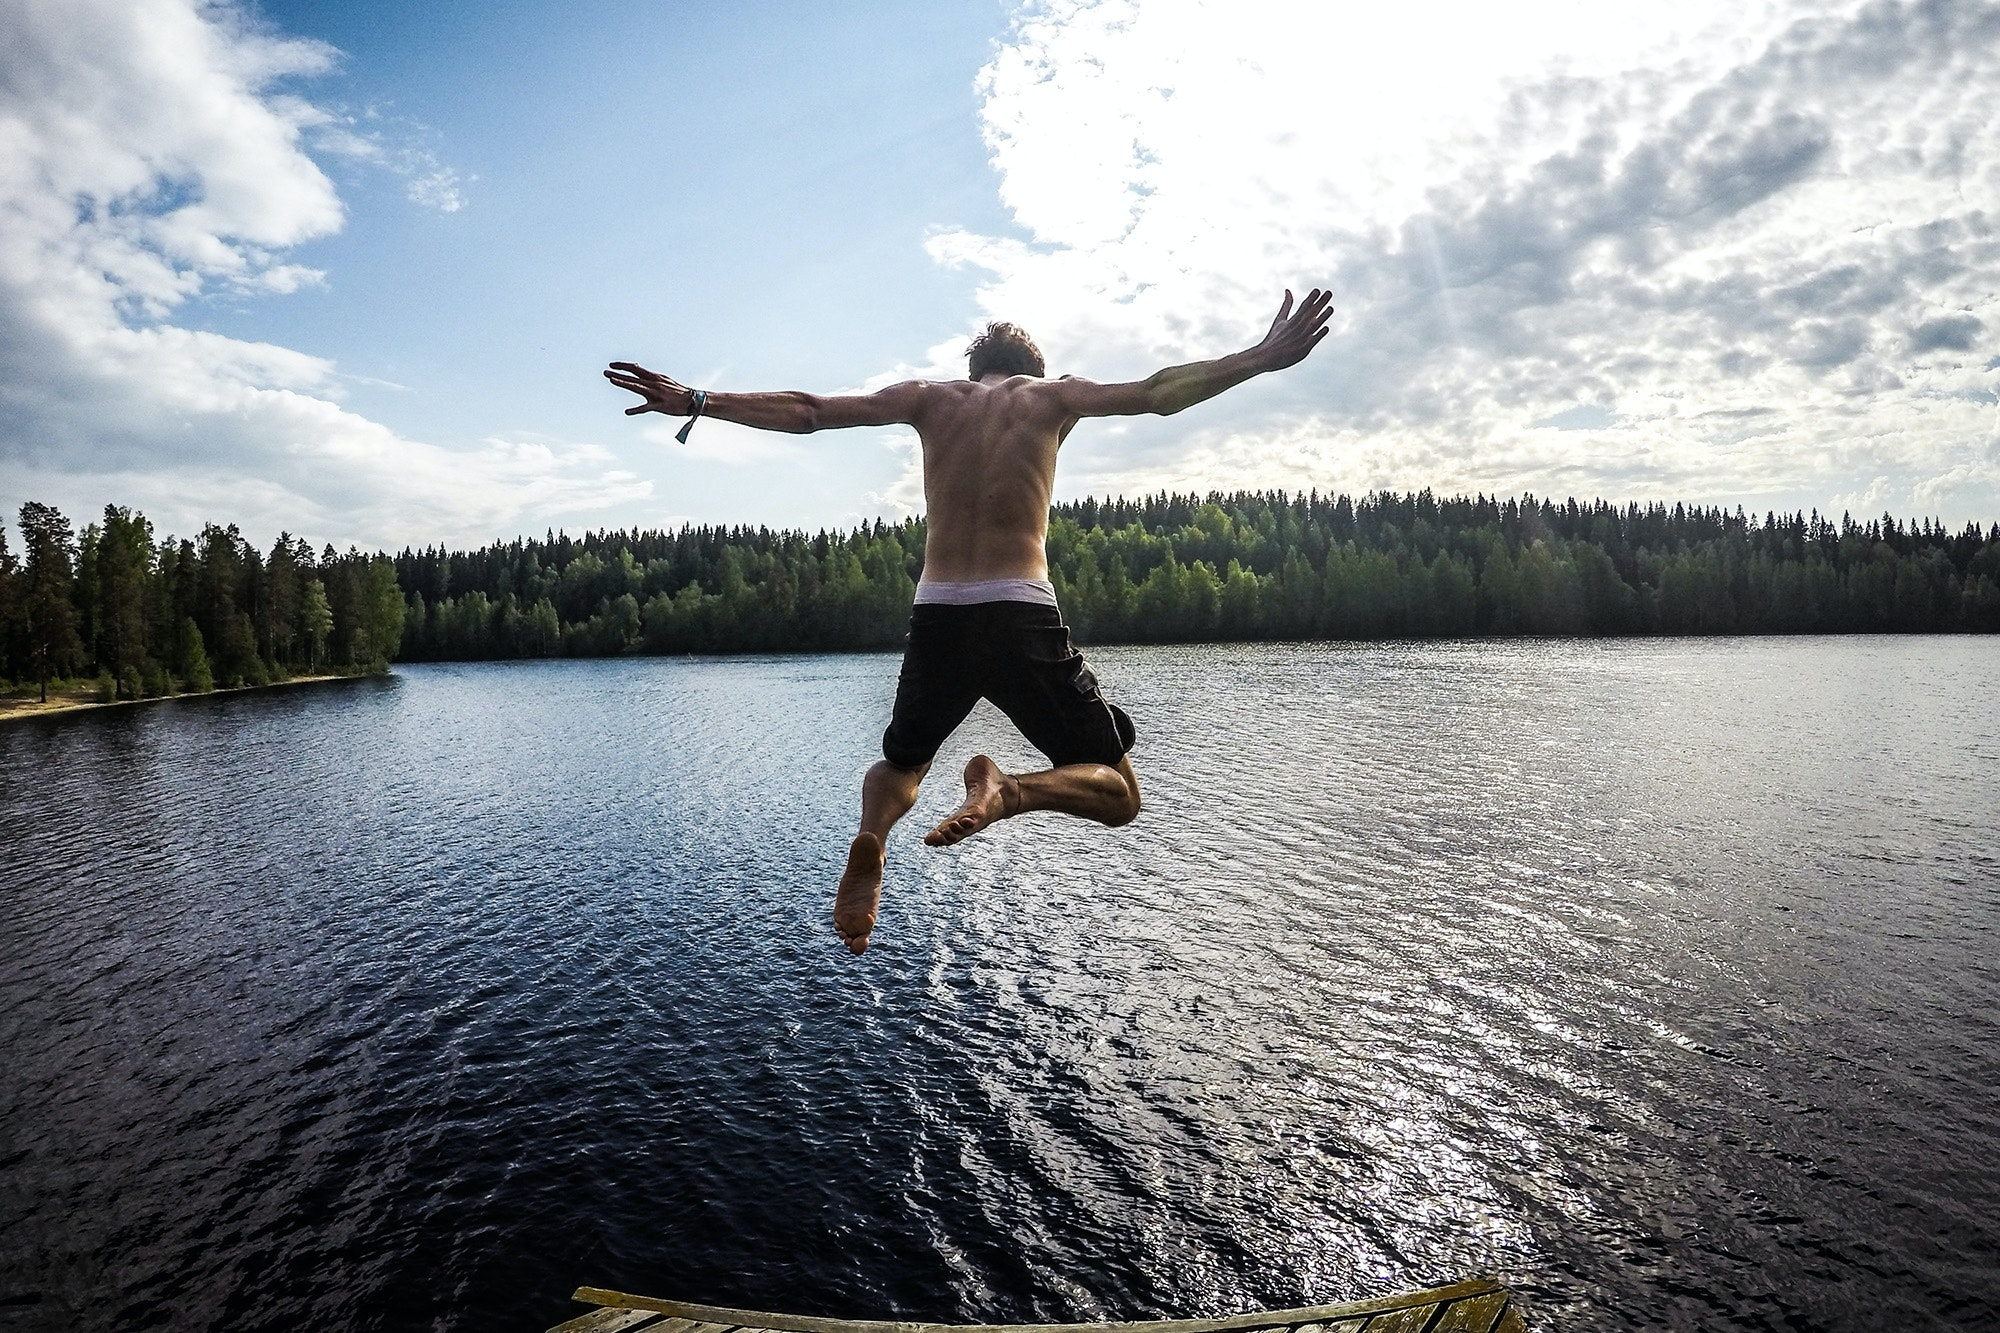 Finland Wants to Send You on a Free Summer Vacation With a Local Guide